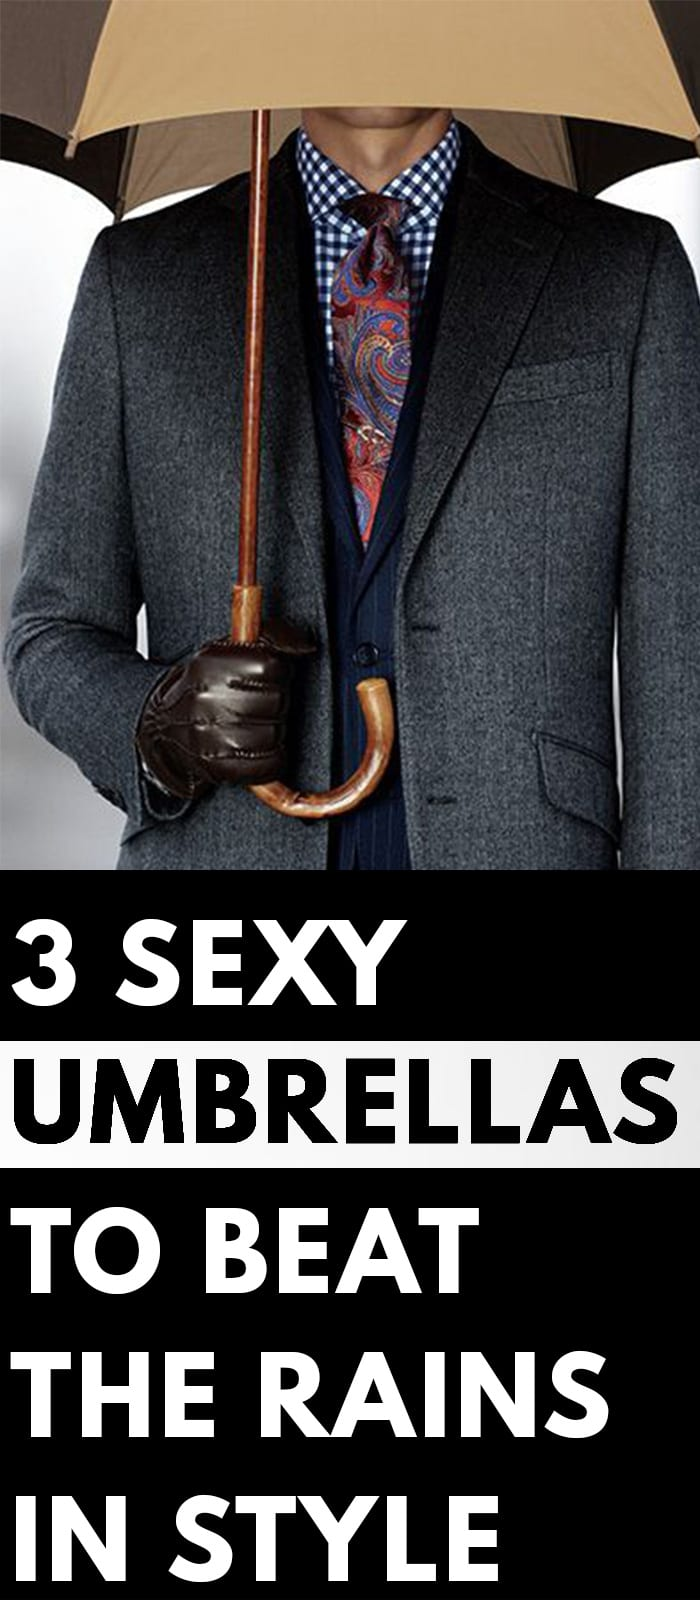 3-Sexy-Umbrellas-to-Beat-The-Rains-In-Style......